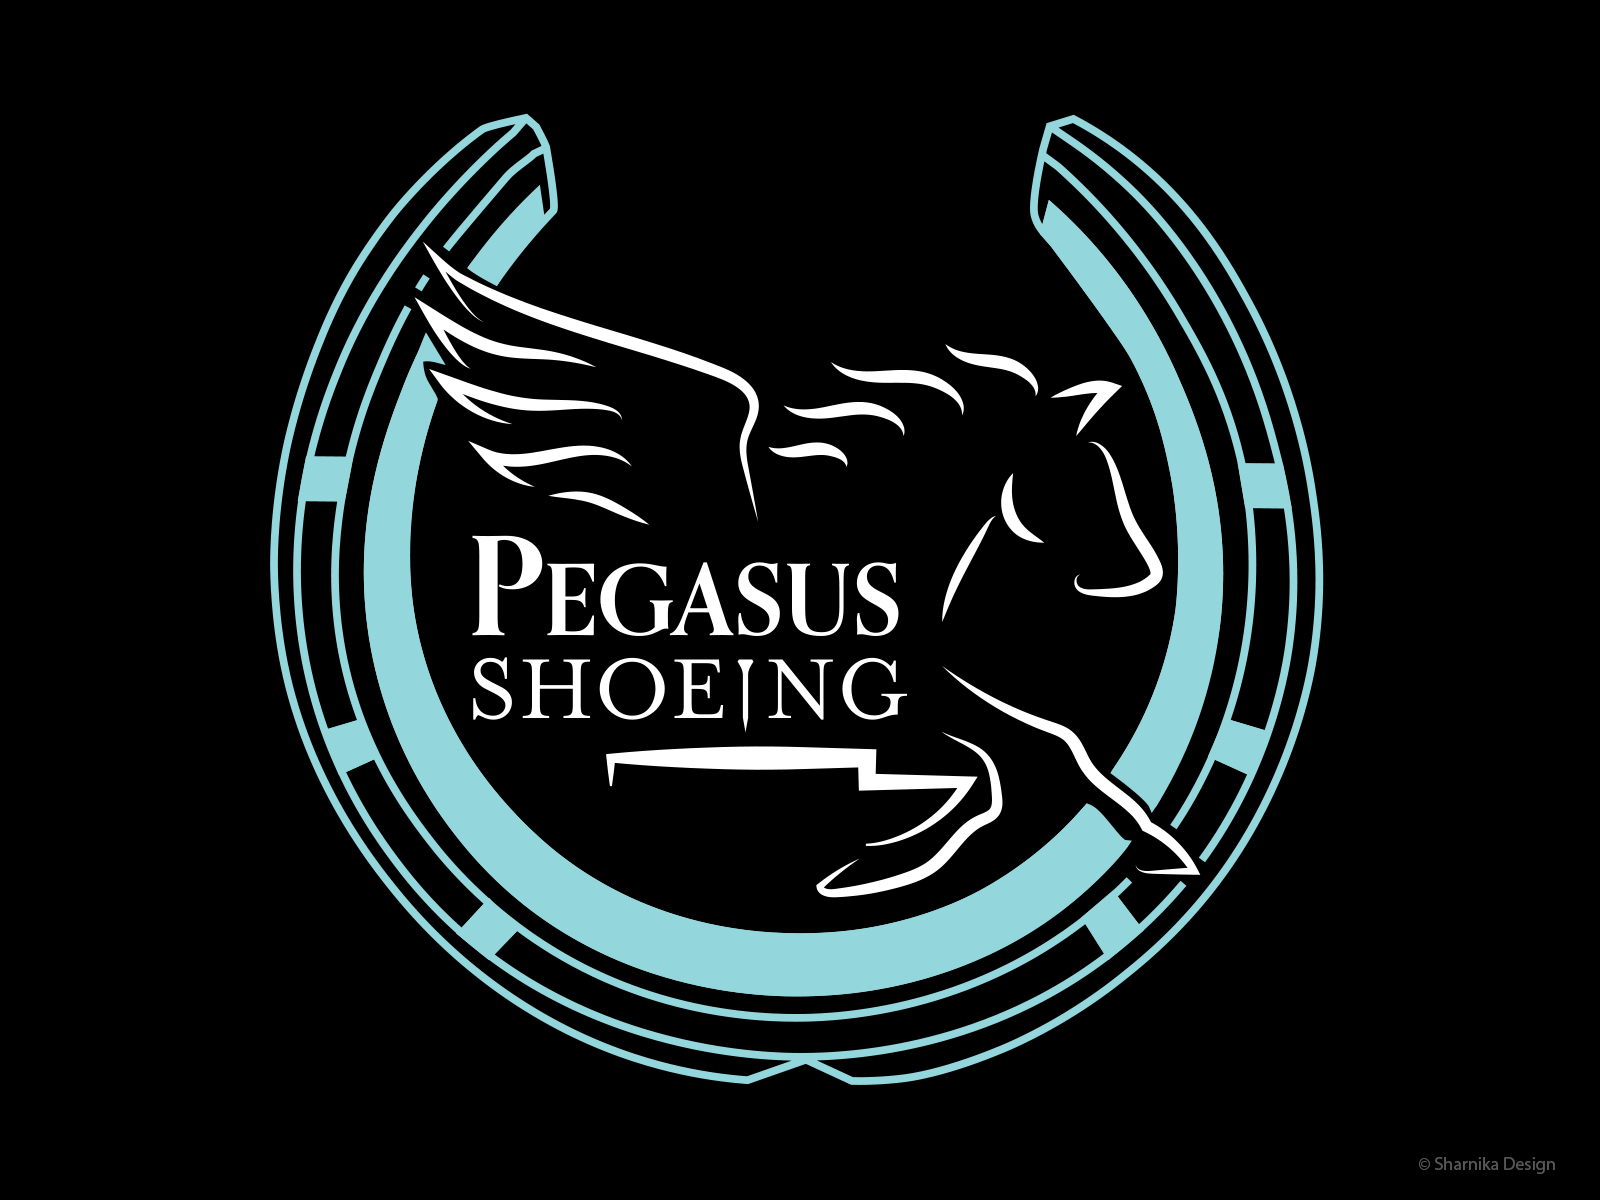 A new look for Pegasus Shoeing